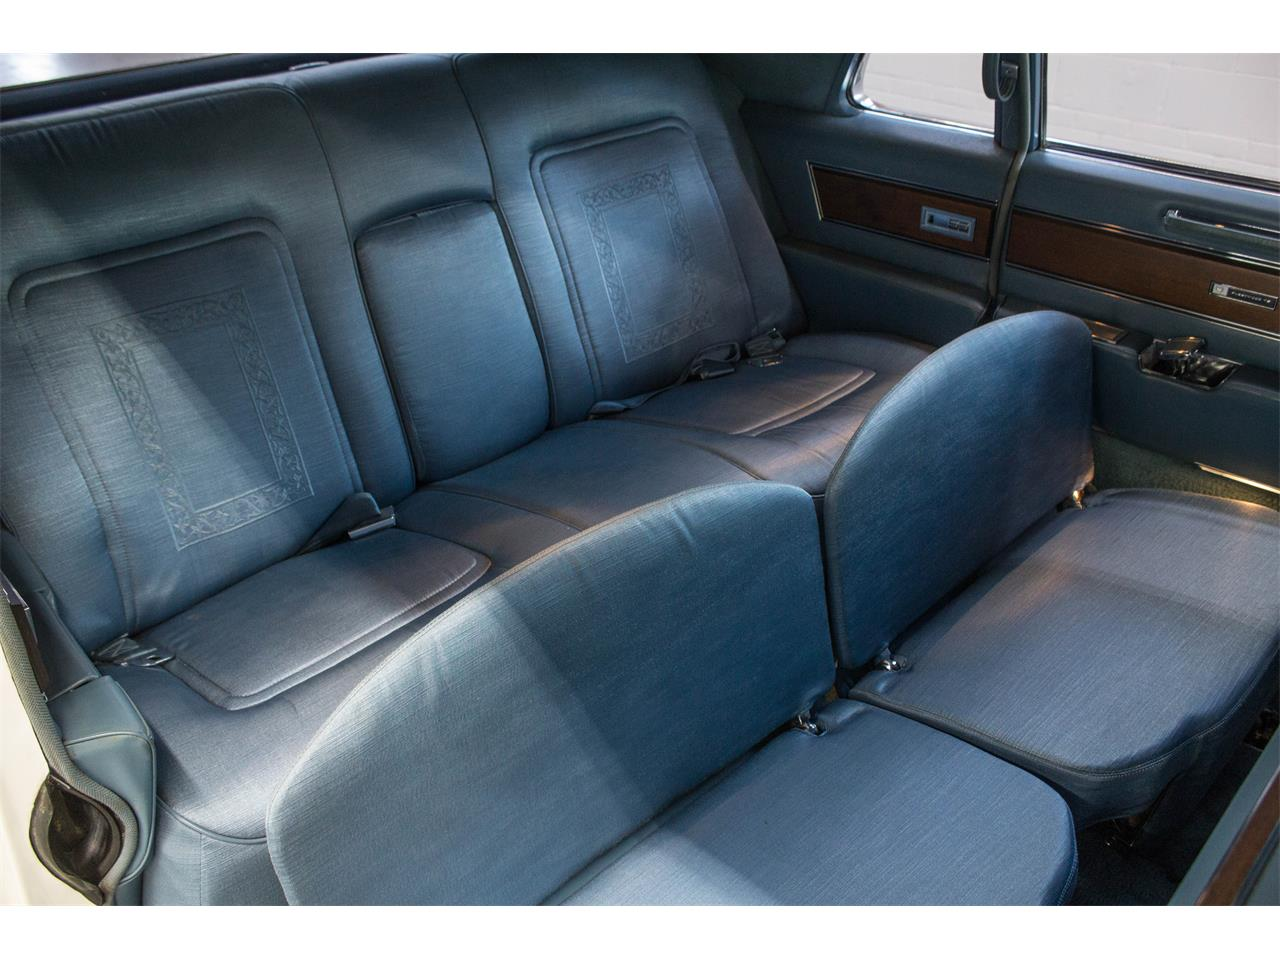 Large Picture of '66 Fleetwood Limousine - $49,995.00 - NKXQ